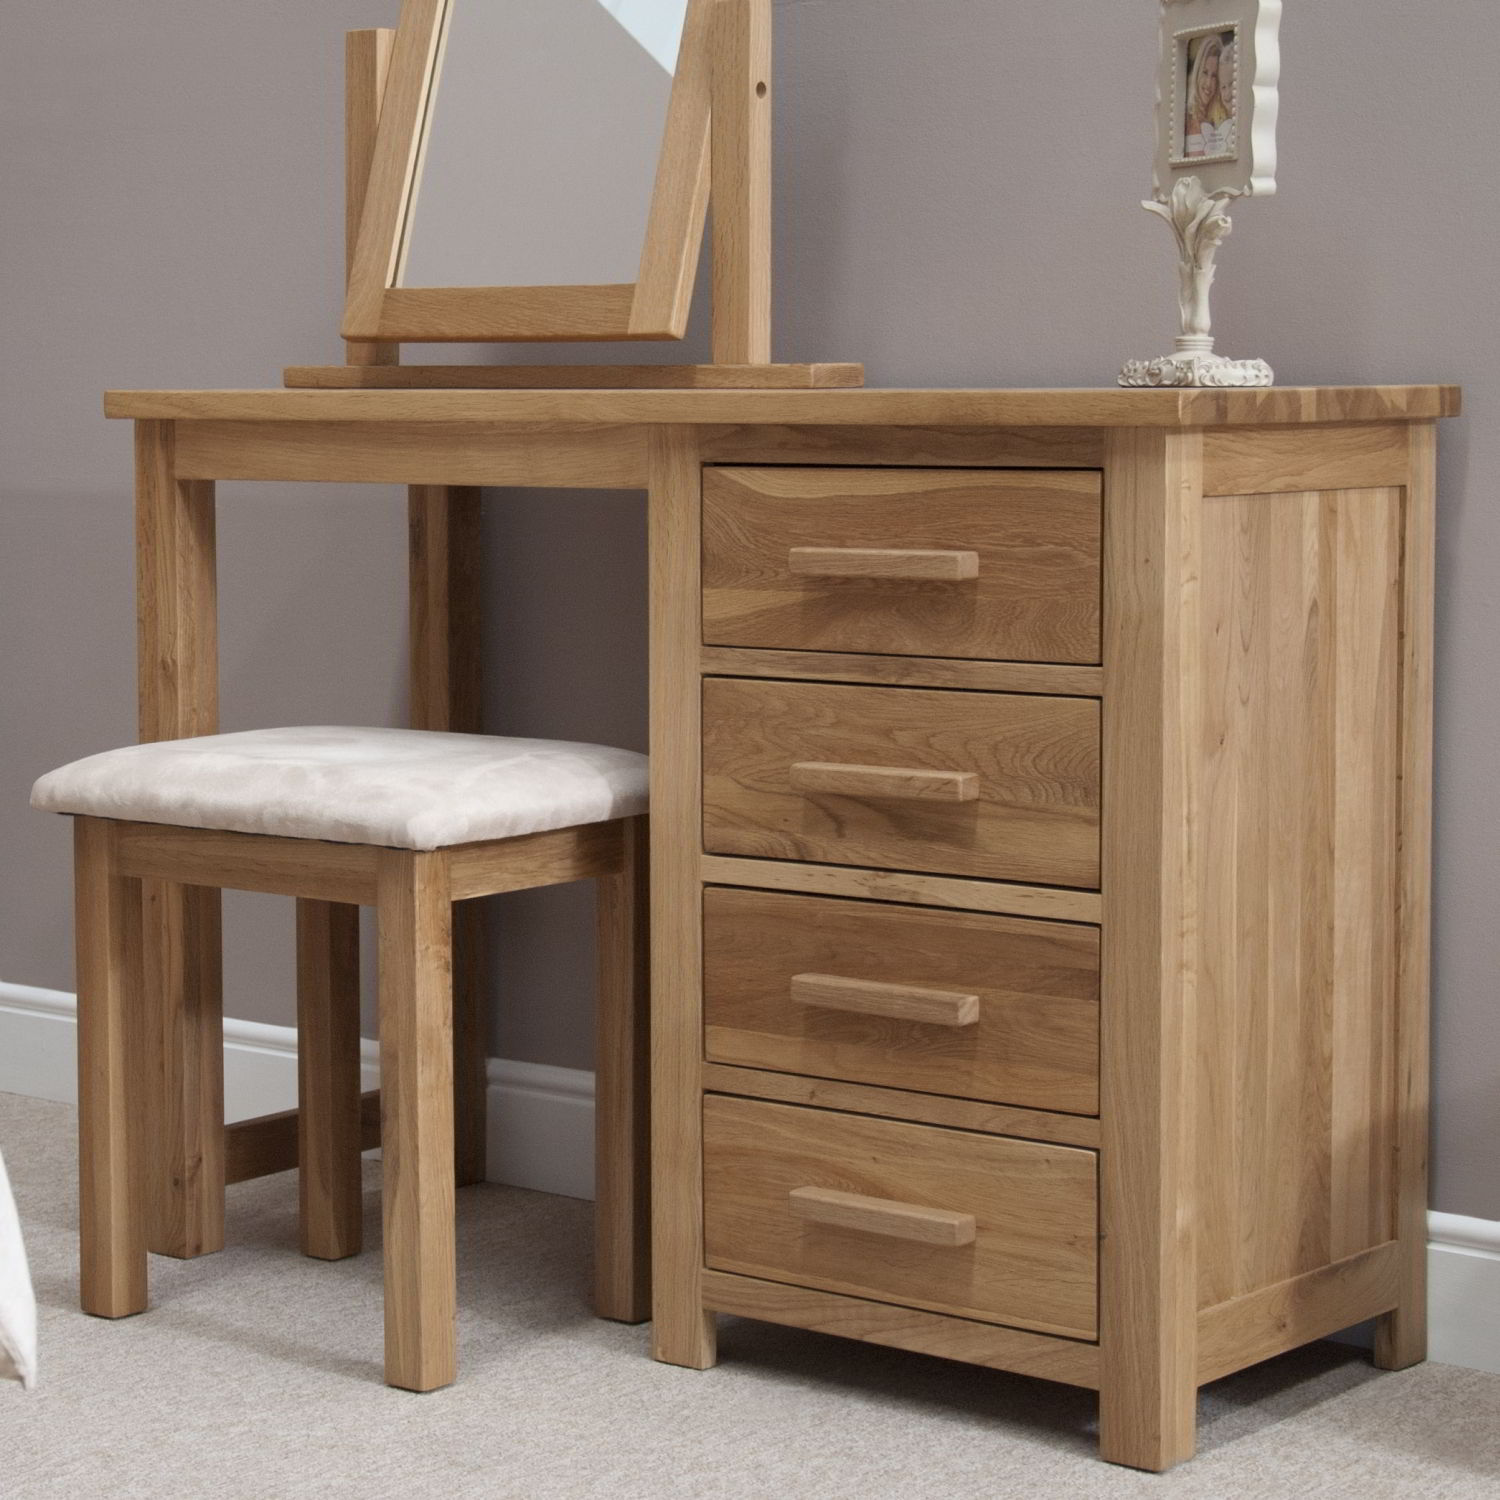 dressing room furniture. Eton Solid Oak Contemporary Bedroom Furniture Dressing Table With Stool Room